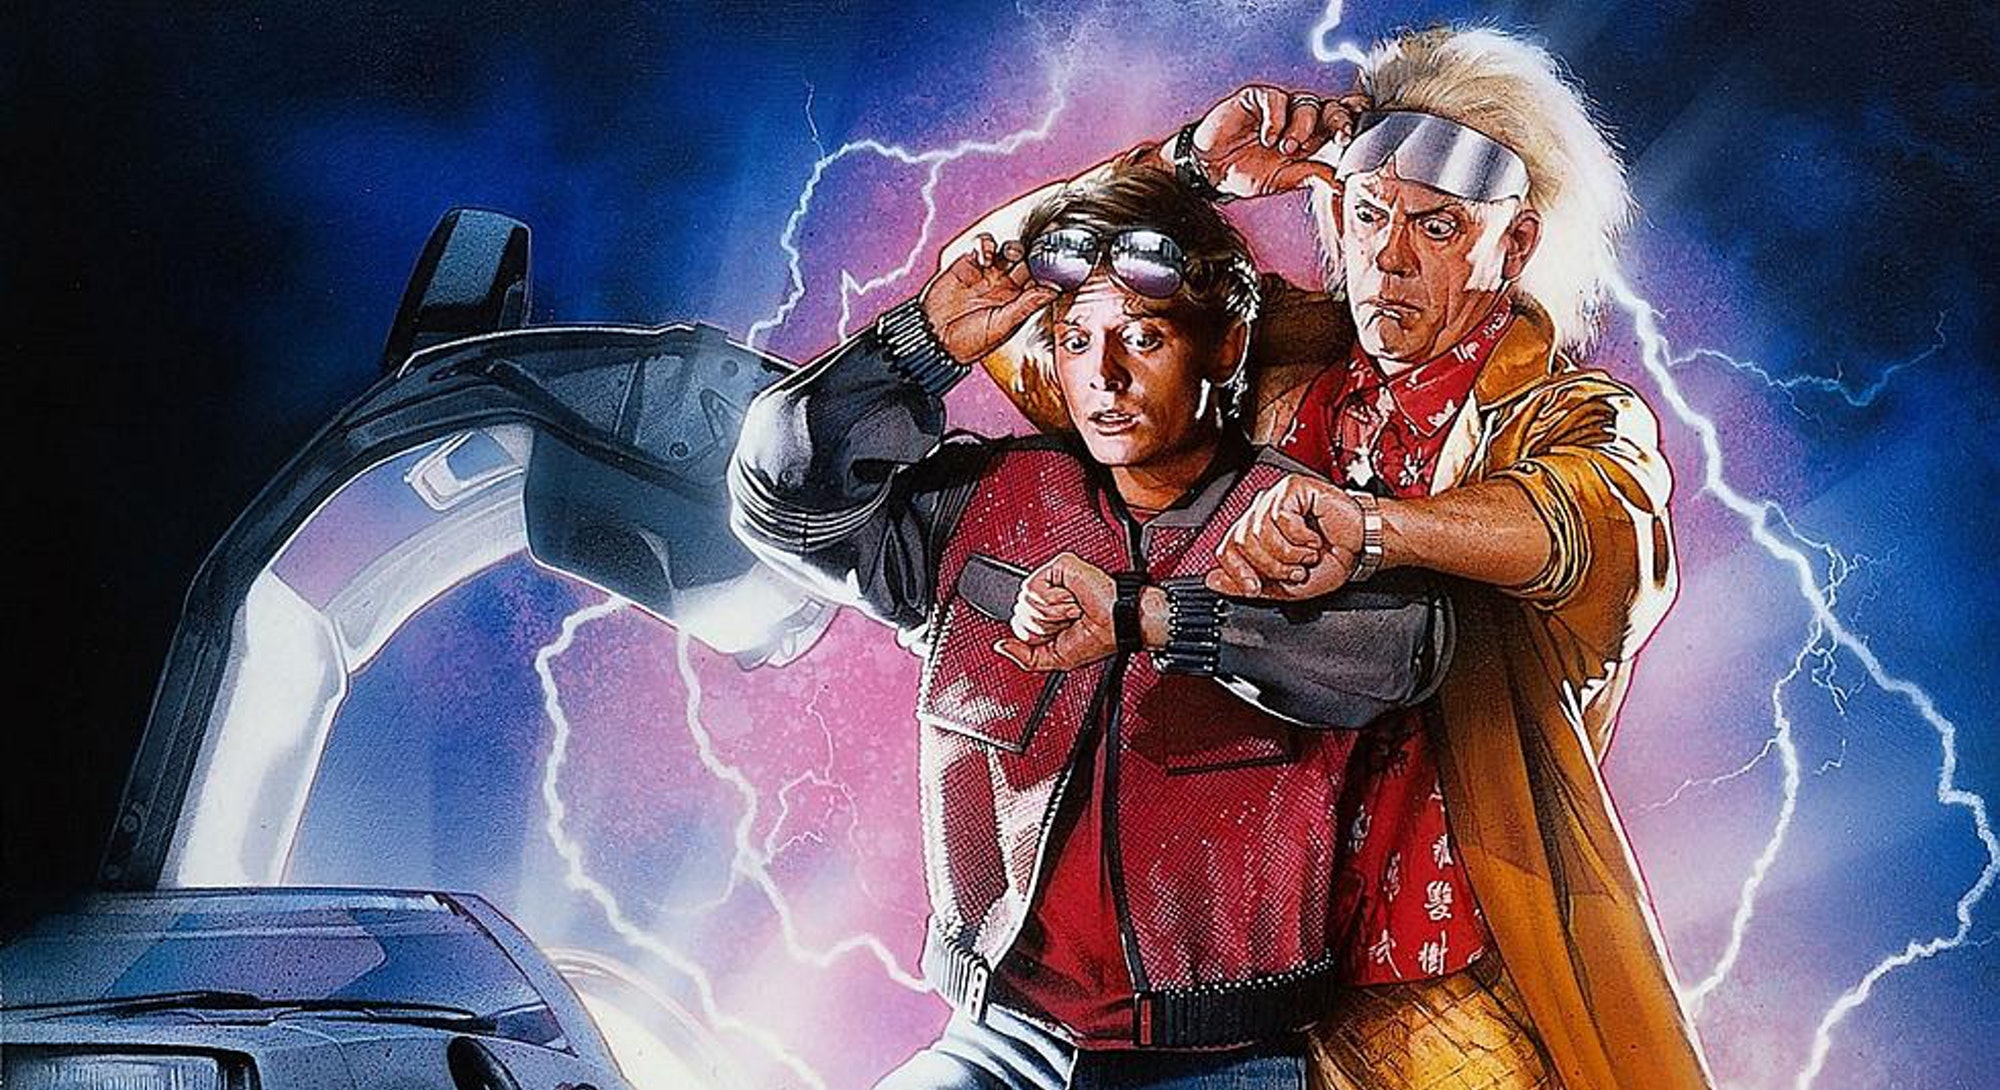 doc and marty illustration from back to the future